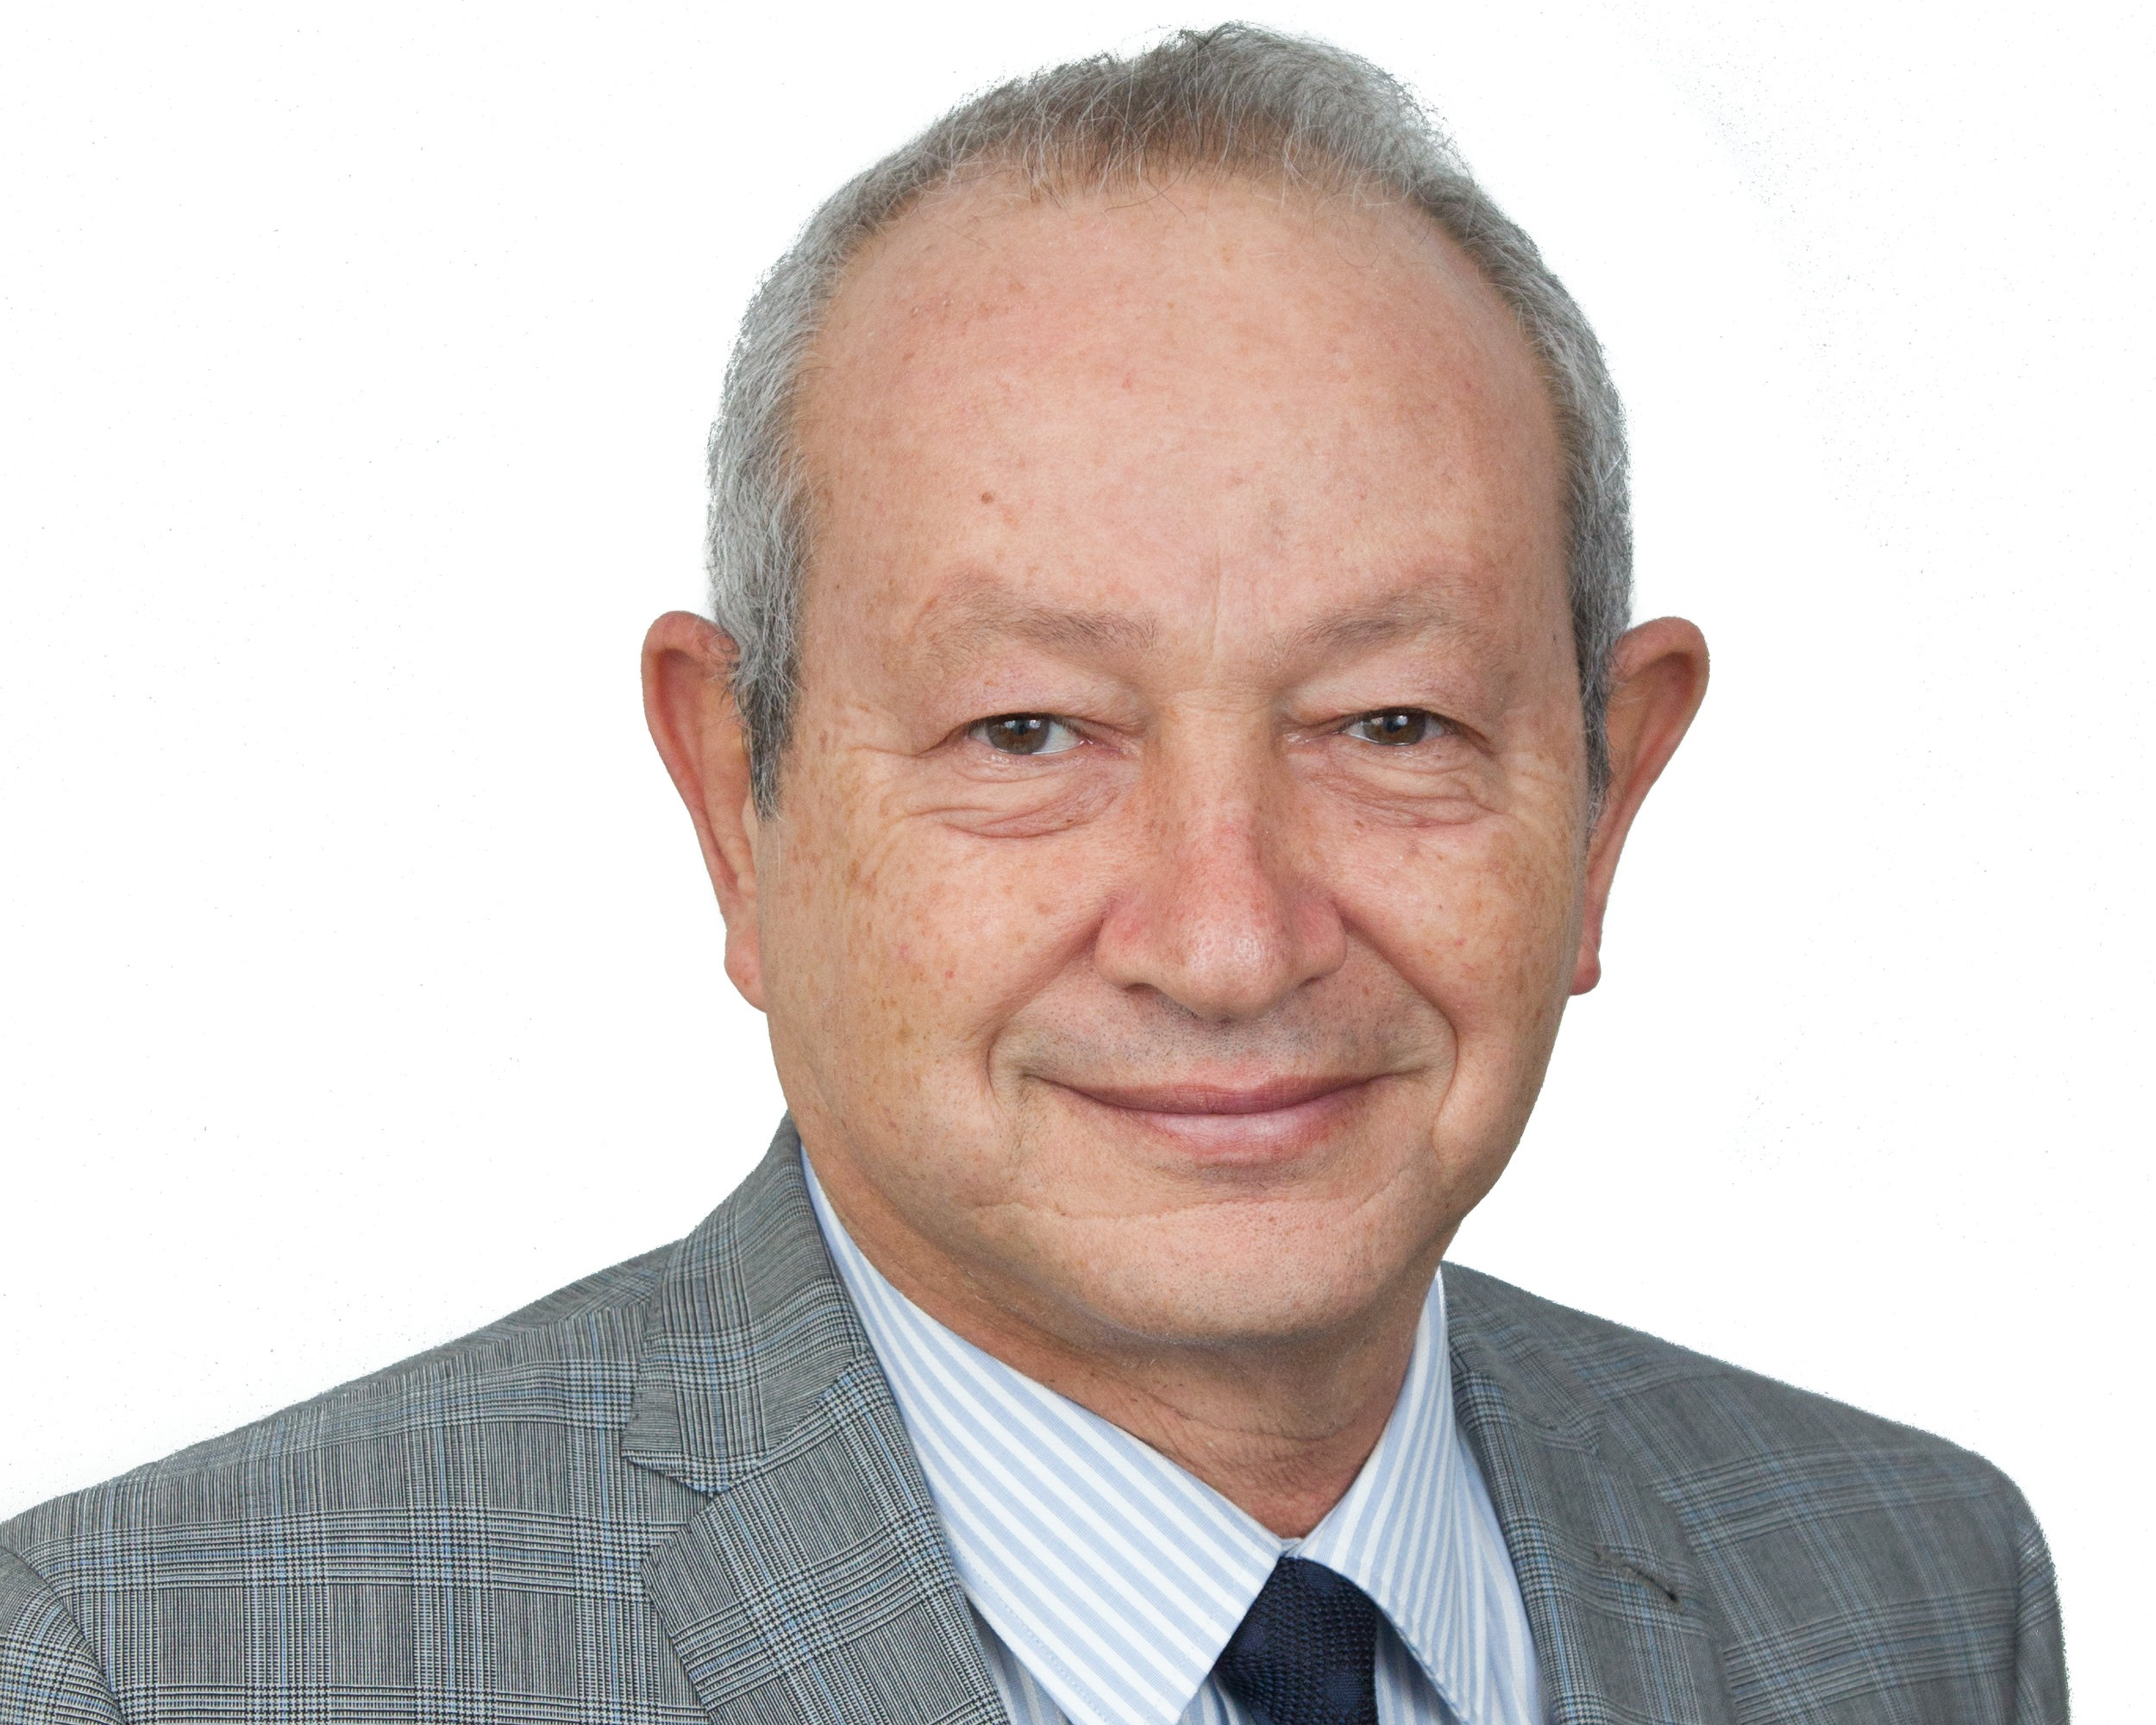 "Mr. Naguib Sawiris founded Orascom Telecom Holding (OTH) and led it to become the leading regional telecom player until the much-publicized merger deal with VEON (formerly VimpelCom Ltd.), creating the world's sixth largest mobile telecommunications provider in April 2011.  Mr. Sawiris is Executive Chairman of Orascom Investment Holding, a holding company investing in industries that are critical to shaping the future, including energy, financial services, agri-industries, real estate development, logistics and transport.  Mr. Sawiris is Chairman of La Mancha Holding, the private natural resource investment vehicle of the Sawiris family group with equity investments in Evolution Mining, Endeavour Mining and Golden Star Resources.  Mr. Sawiris is also Chairman of Ora, a company undertaking high-end real estate developments in various prime locations around the world.  In 2015, the Sawiris family acquired a majority stake in Euronews where Mr. Sawiris is Chairman of the board. The Sawiris family also has ownership in several assets in the media business in Egypt.  At international and regional levels, Mr. Sawiris served and is serving on a number of boards, committees and councils including International Advisory Committee to the New York Stock Exchange (NYSE), International Advisory Board to the National Bank of Kuwait, London Stock Exchange Group's Africa Advisory Group, External Advisory Council to the Global Institute for Advanced Study at NYU, the Boards of Trustees of Nile University (NU), the French University in Egypt (UFE), and the Arab Thought Foundation.  Mr. Sawiris is also the recipient of numerous honorary degrees, industry awards and civic honors, including the ""Legion d'Honneur"" (the highest award given by the French Republic for outstanding services rendered to France). In July 2011 Mr. Sawiris was awarded the Honor of Commander of the Order of the ""Stella della Solidarietà Italiana"" (Star of Italian Solidarity). In 2006, the prestigious ""Sitara-e-Quaid-e-Azam"" award was conferred upon him by General Pervez Musharref for services rendered to the people of Pakistan in the field of telecommunication, investments and social sector work.  Mr. Sawiris holds a diploma of Mechanical Engineering with a Masters in Technical Administration from the Swiss Federal Institute of Technology Zurich (ETH Zürich) and a Diploma from the German Evangelical School, Cairo, Egypt."